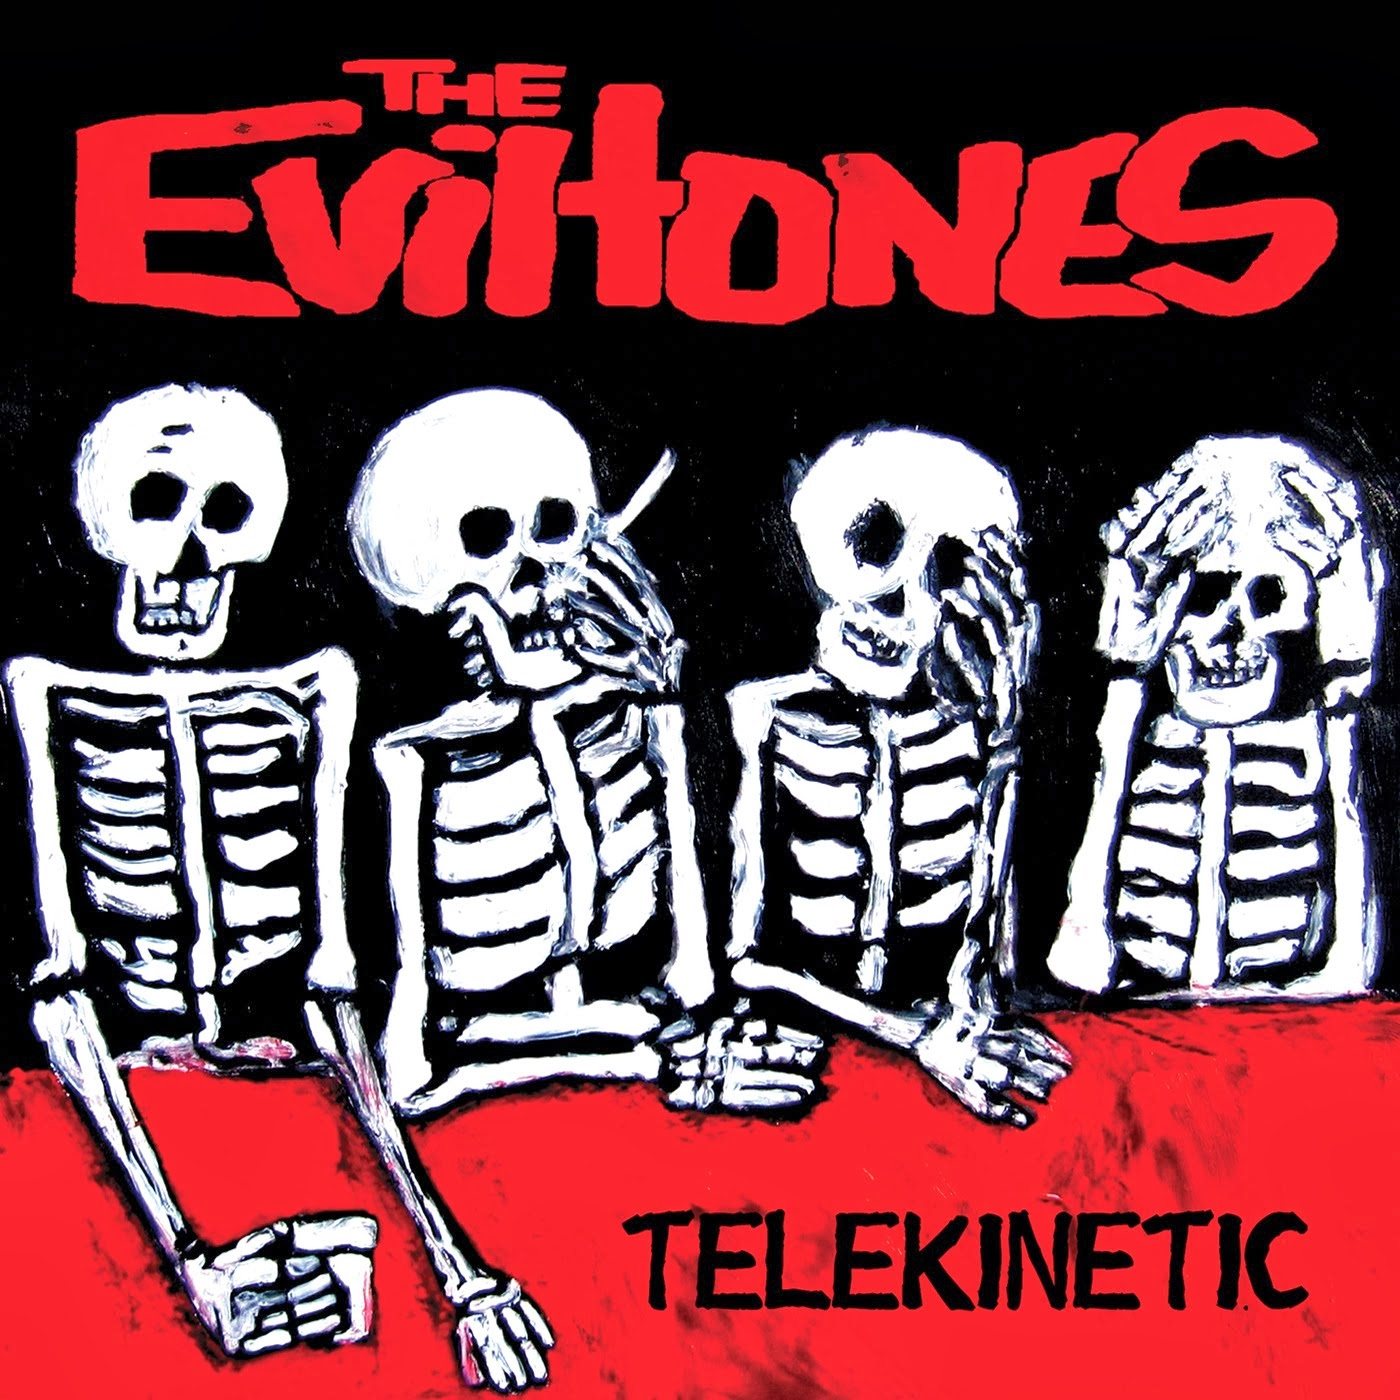 THE EVILTONES - Telekinetic 7""